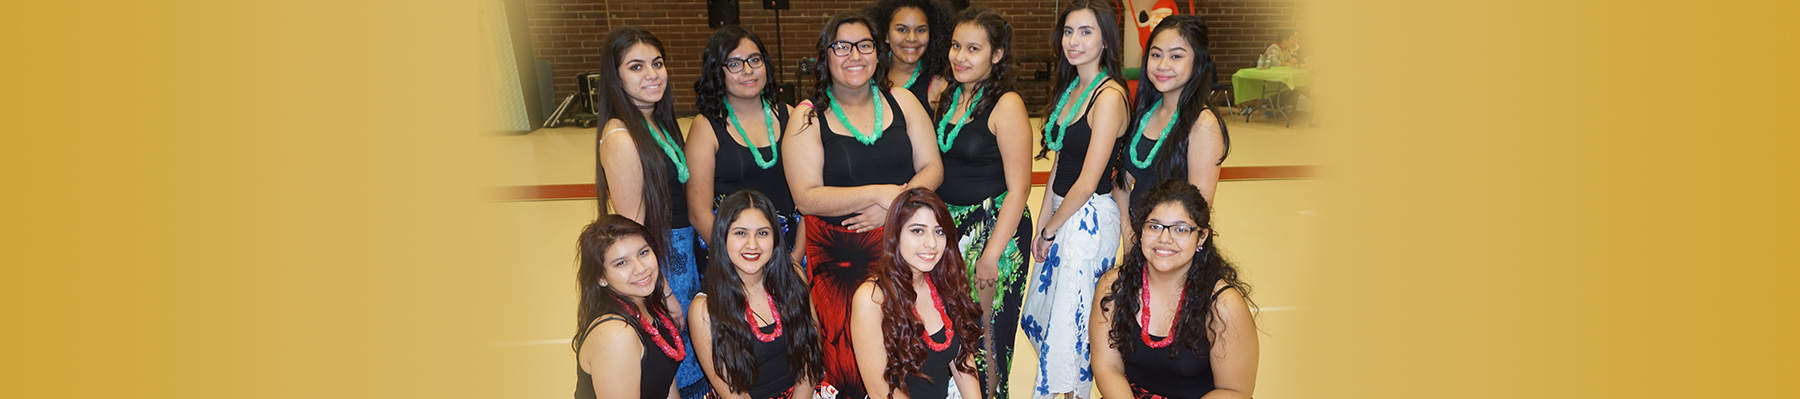 group of students in tropical attire